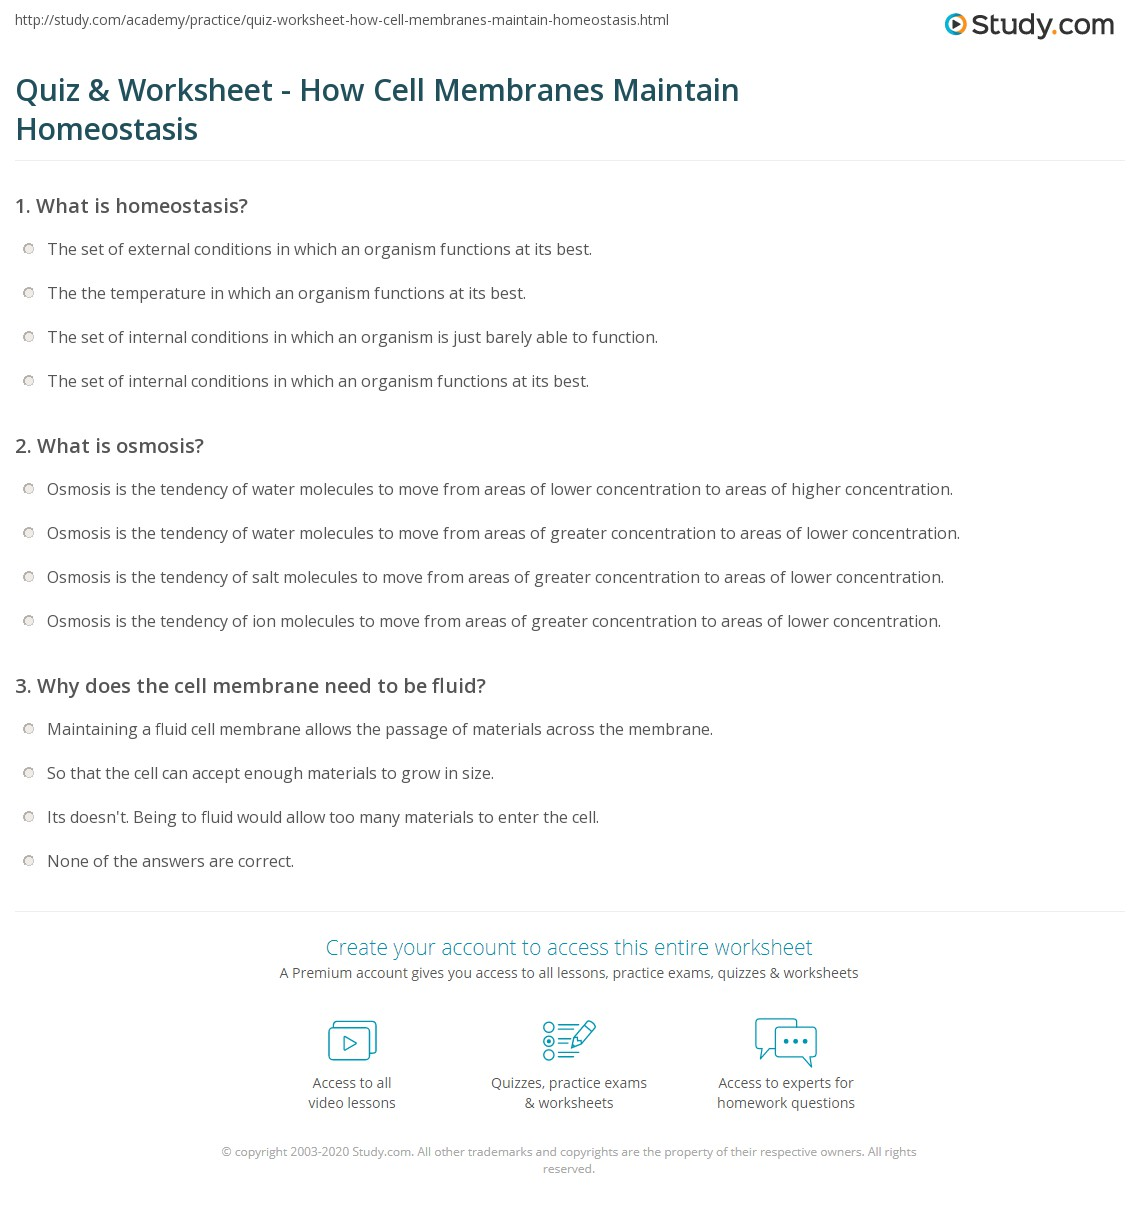 33 Homeostasis And Cell Transport Worksheet Answers